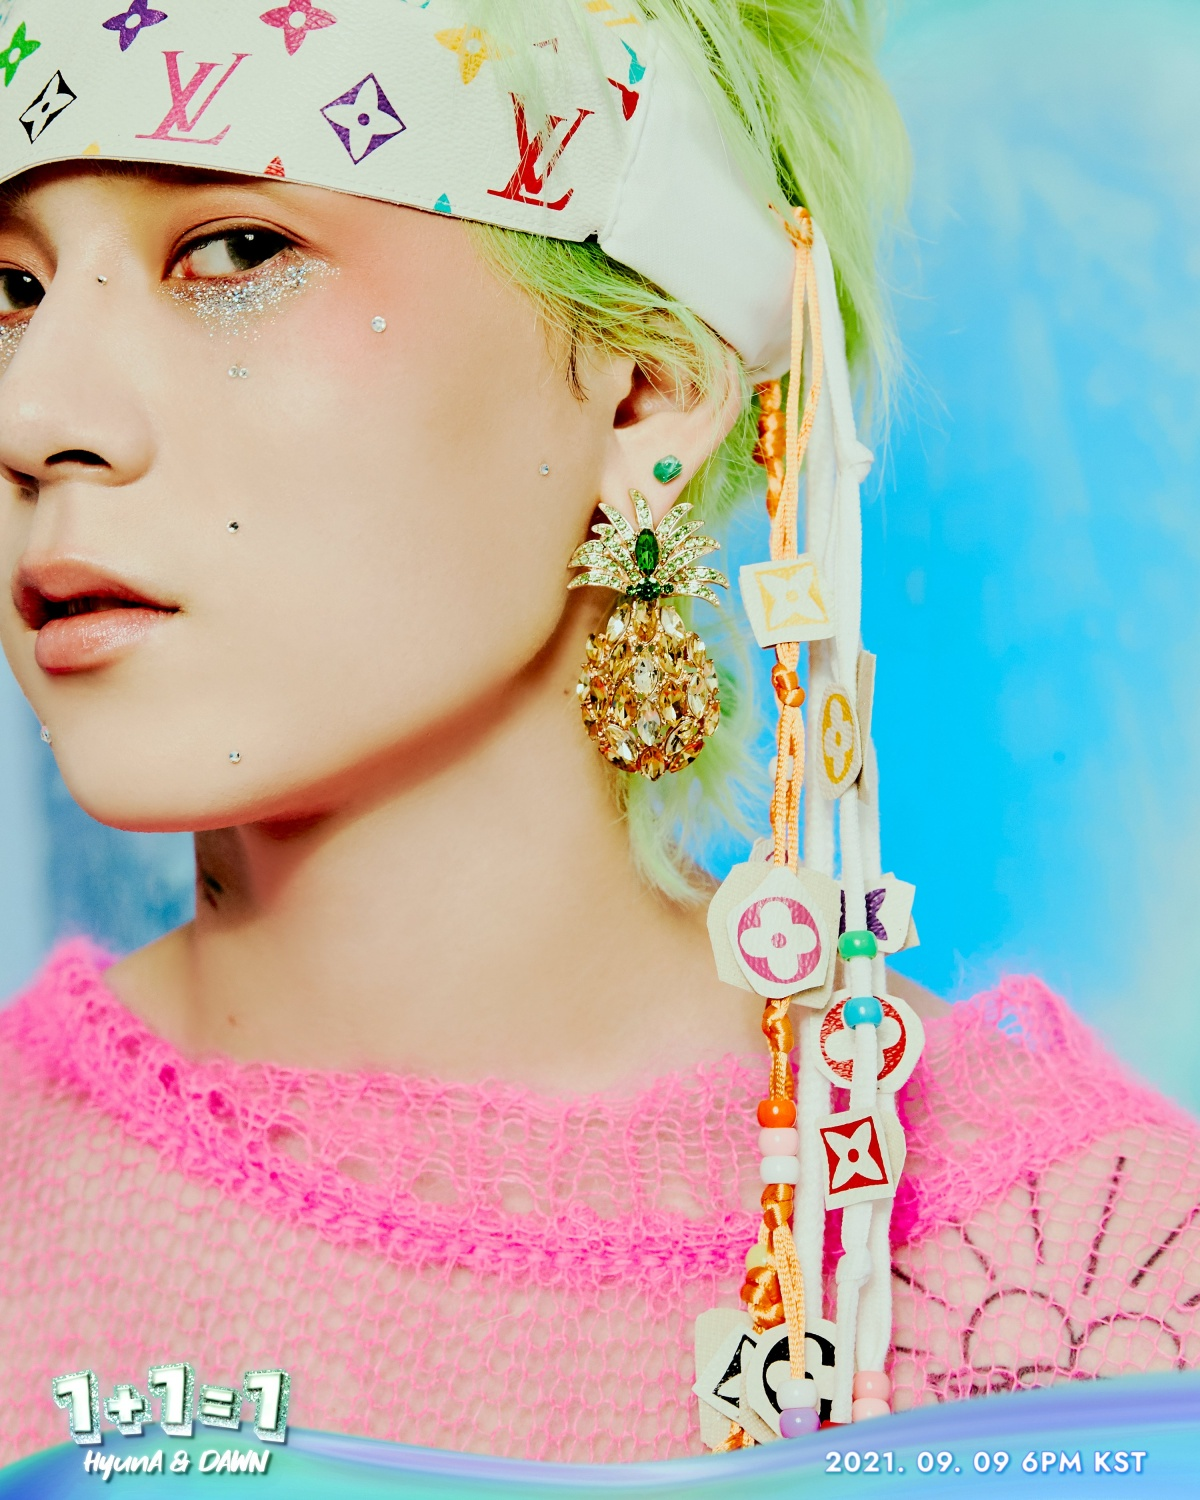 DAWN, kitsch personal teaser… gorgeous styling